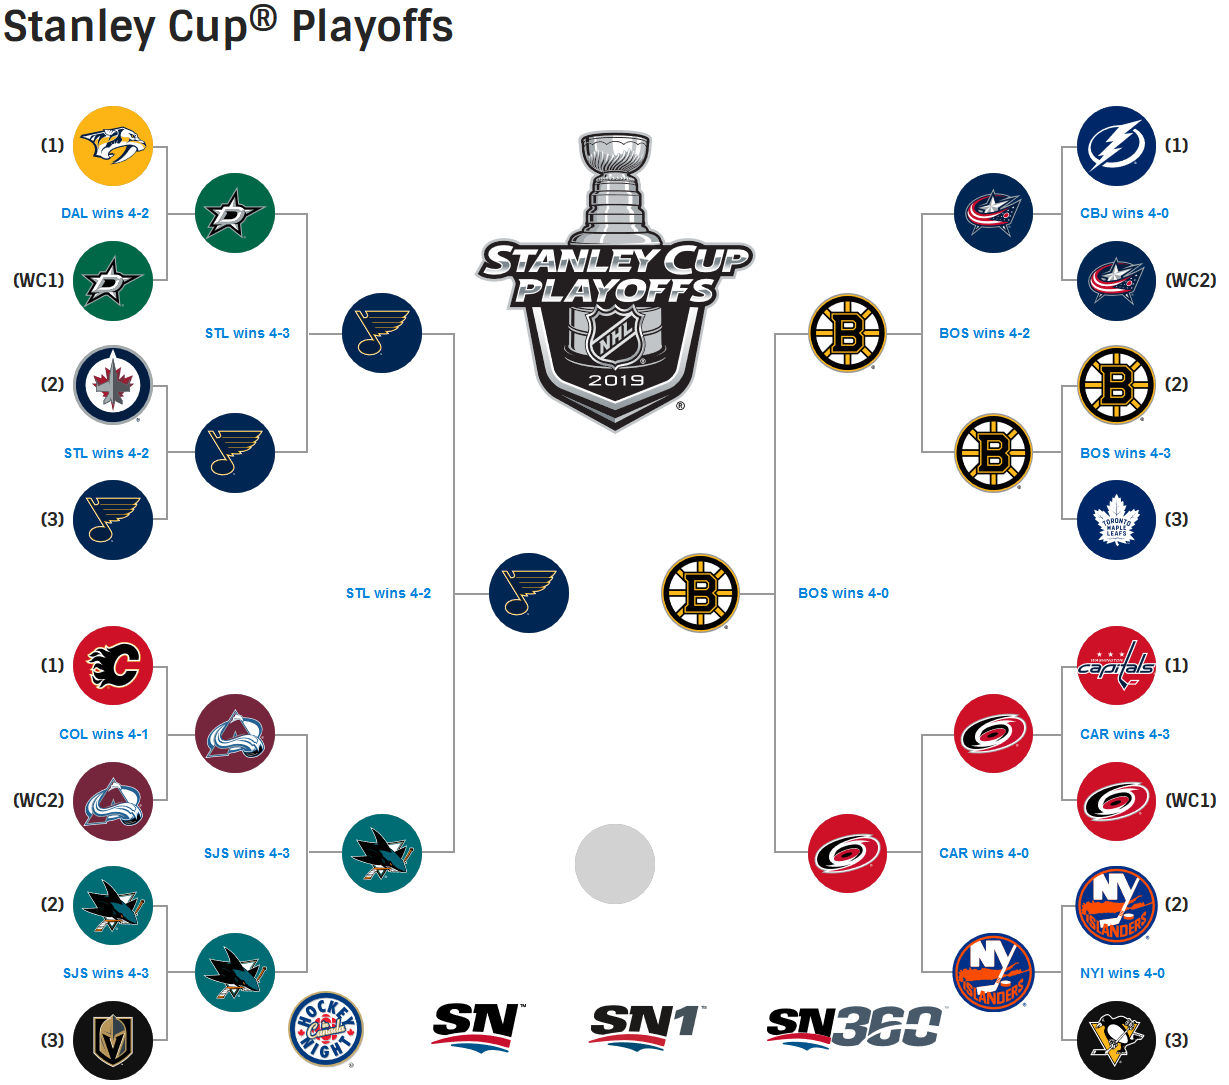 Pin By Tammy Knight On My Favorite Nhl Team Stanley Cup Camping Gifts Stanley Cup Playoffs